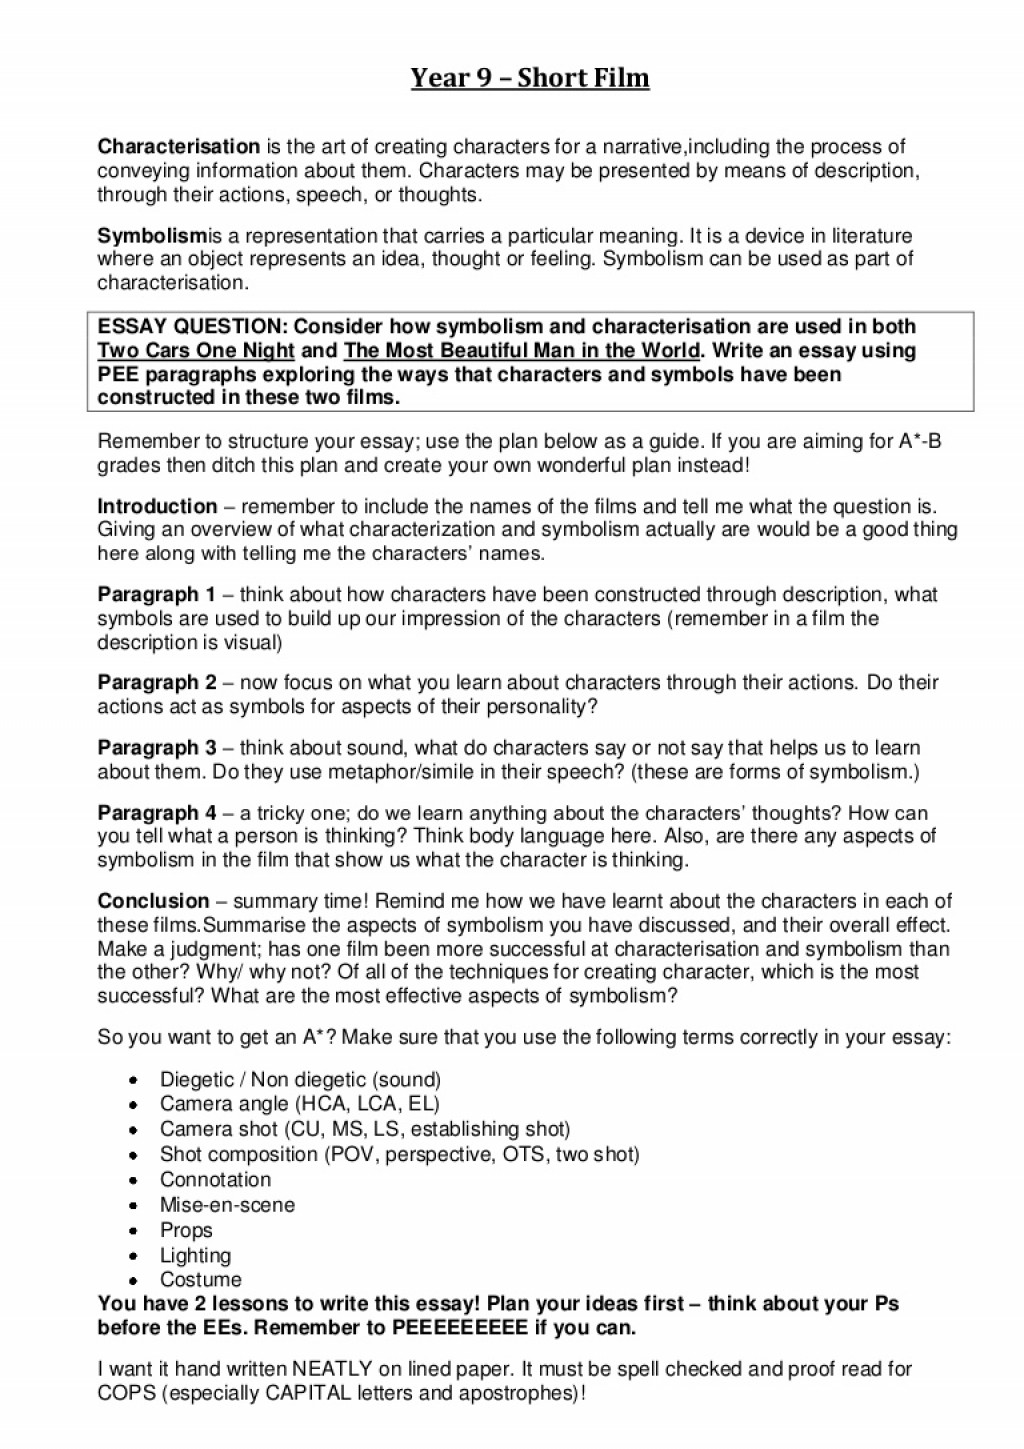 015 How To Write An Essay On Characterization Example Year9shortfilm Chracterisationsymbolismessay Phpapp02 Thumbnail Astounding A Paper Research Large